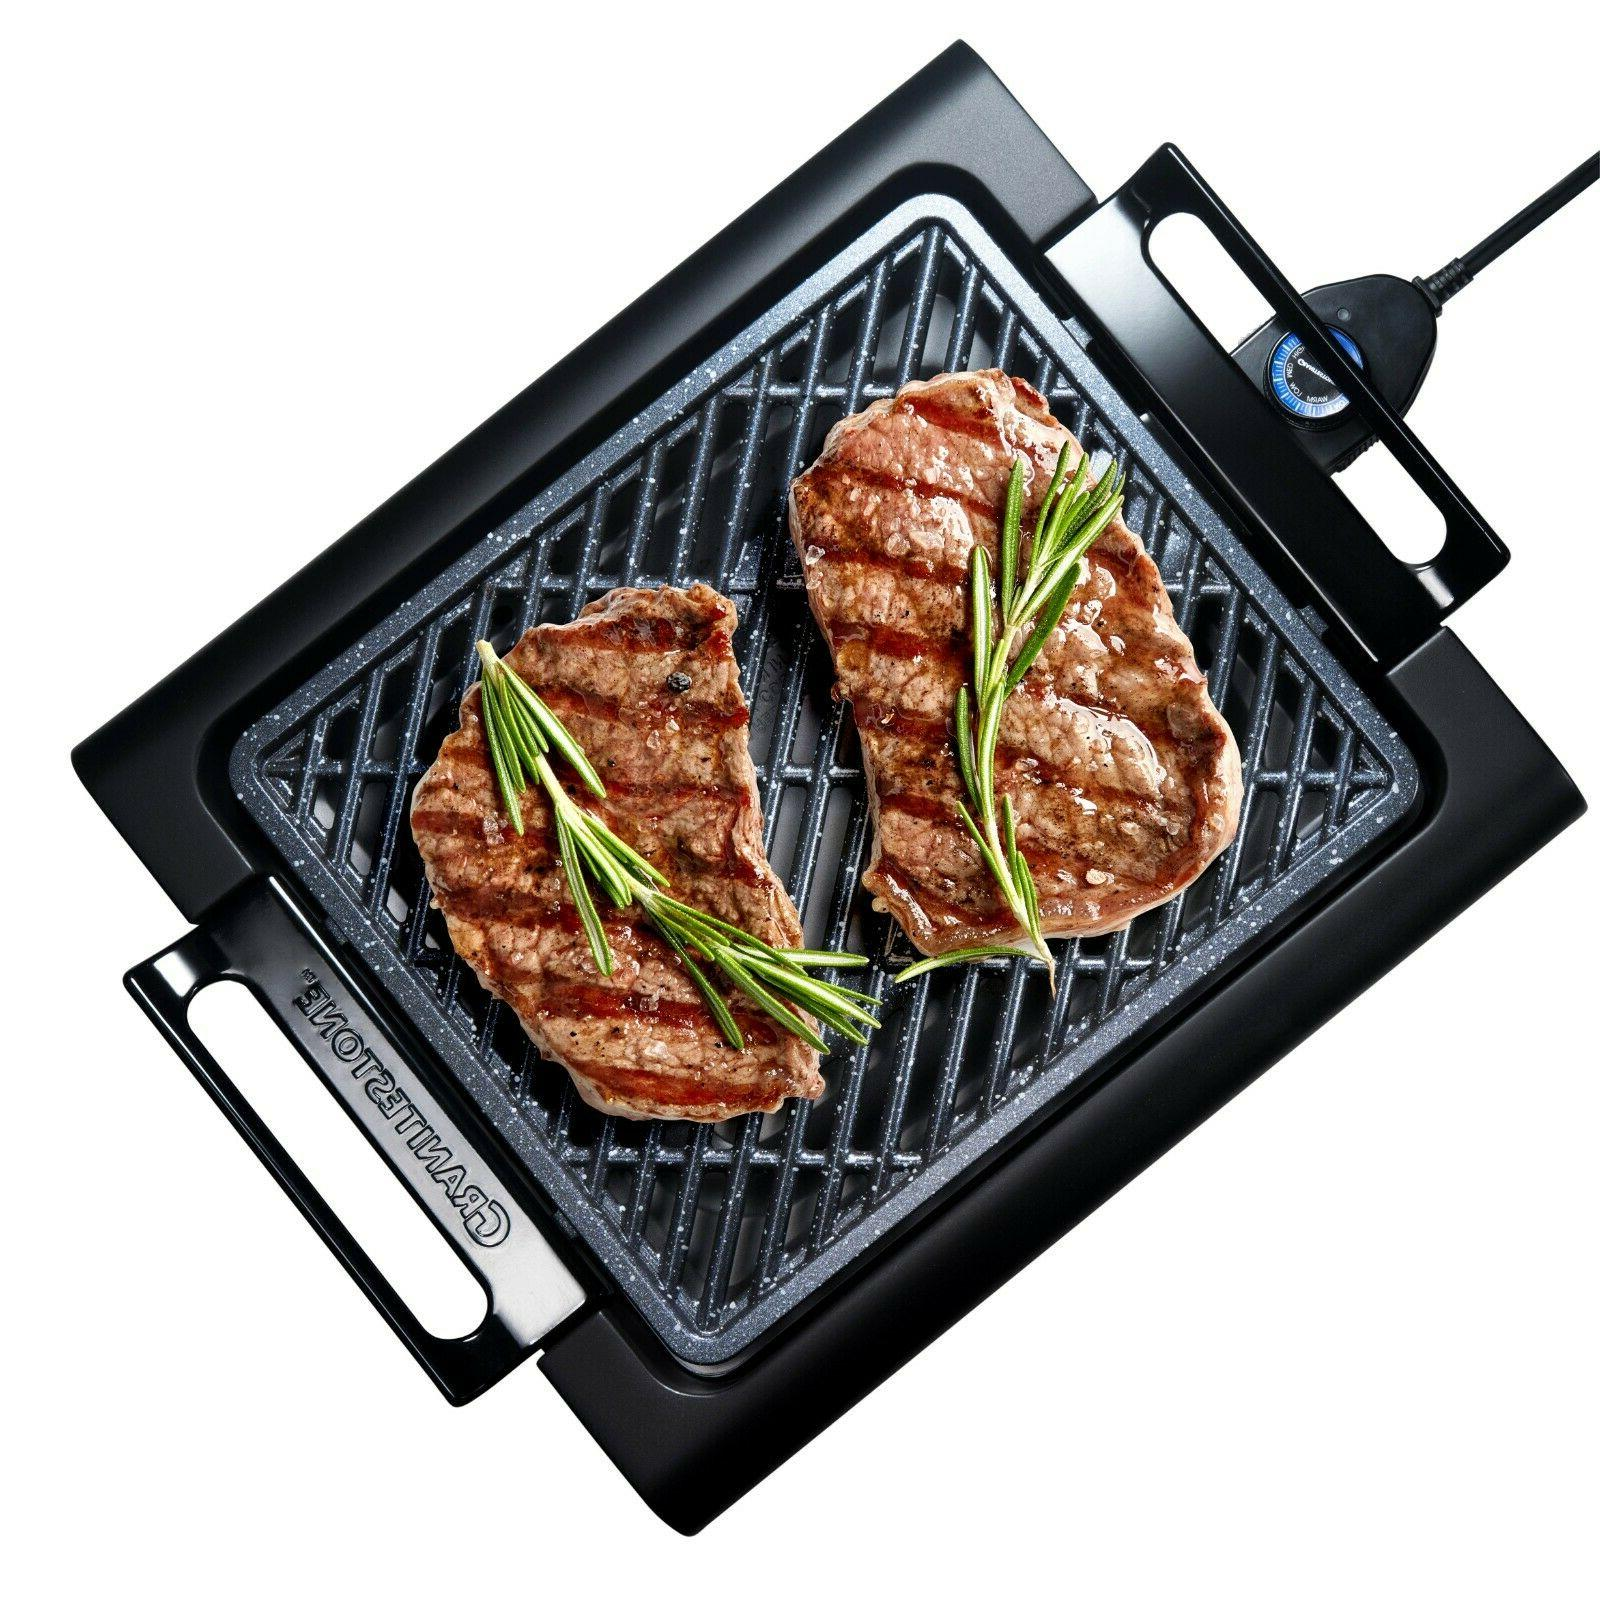 smokeless electric grill with nonstick surface as